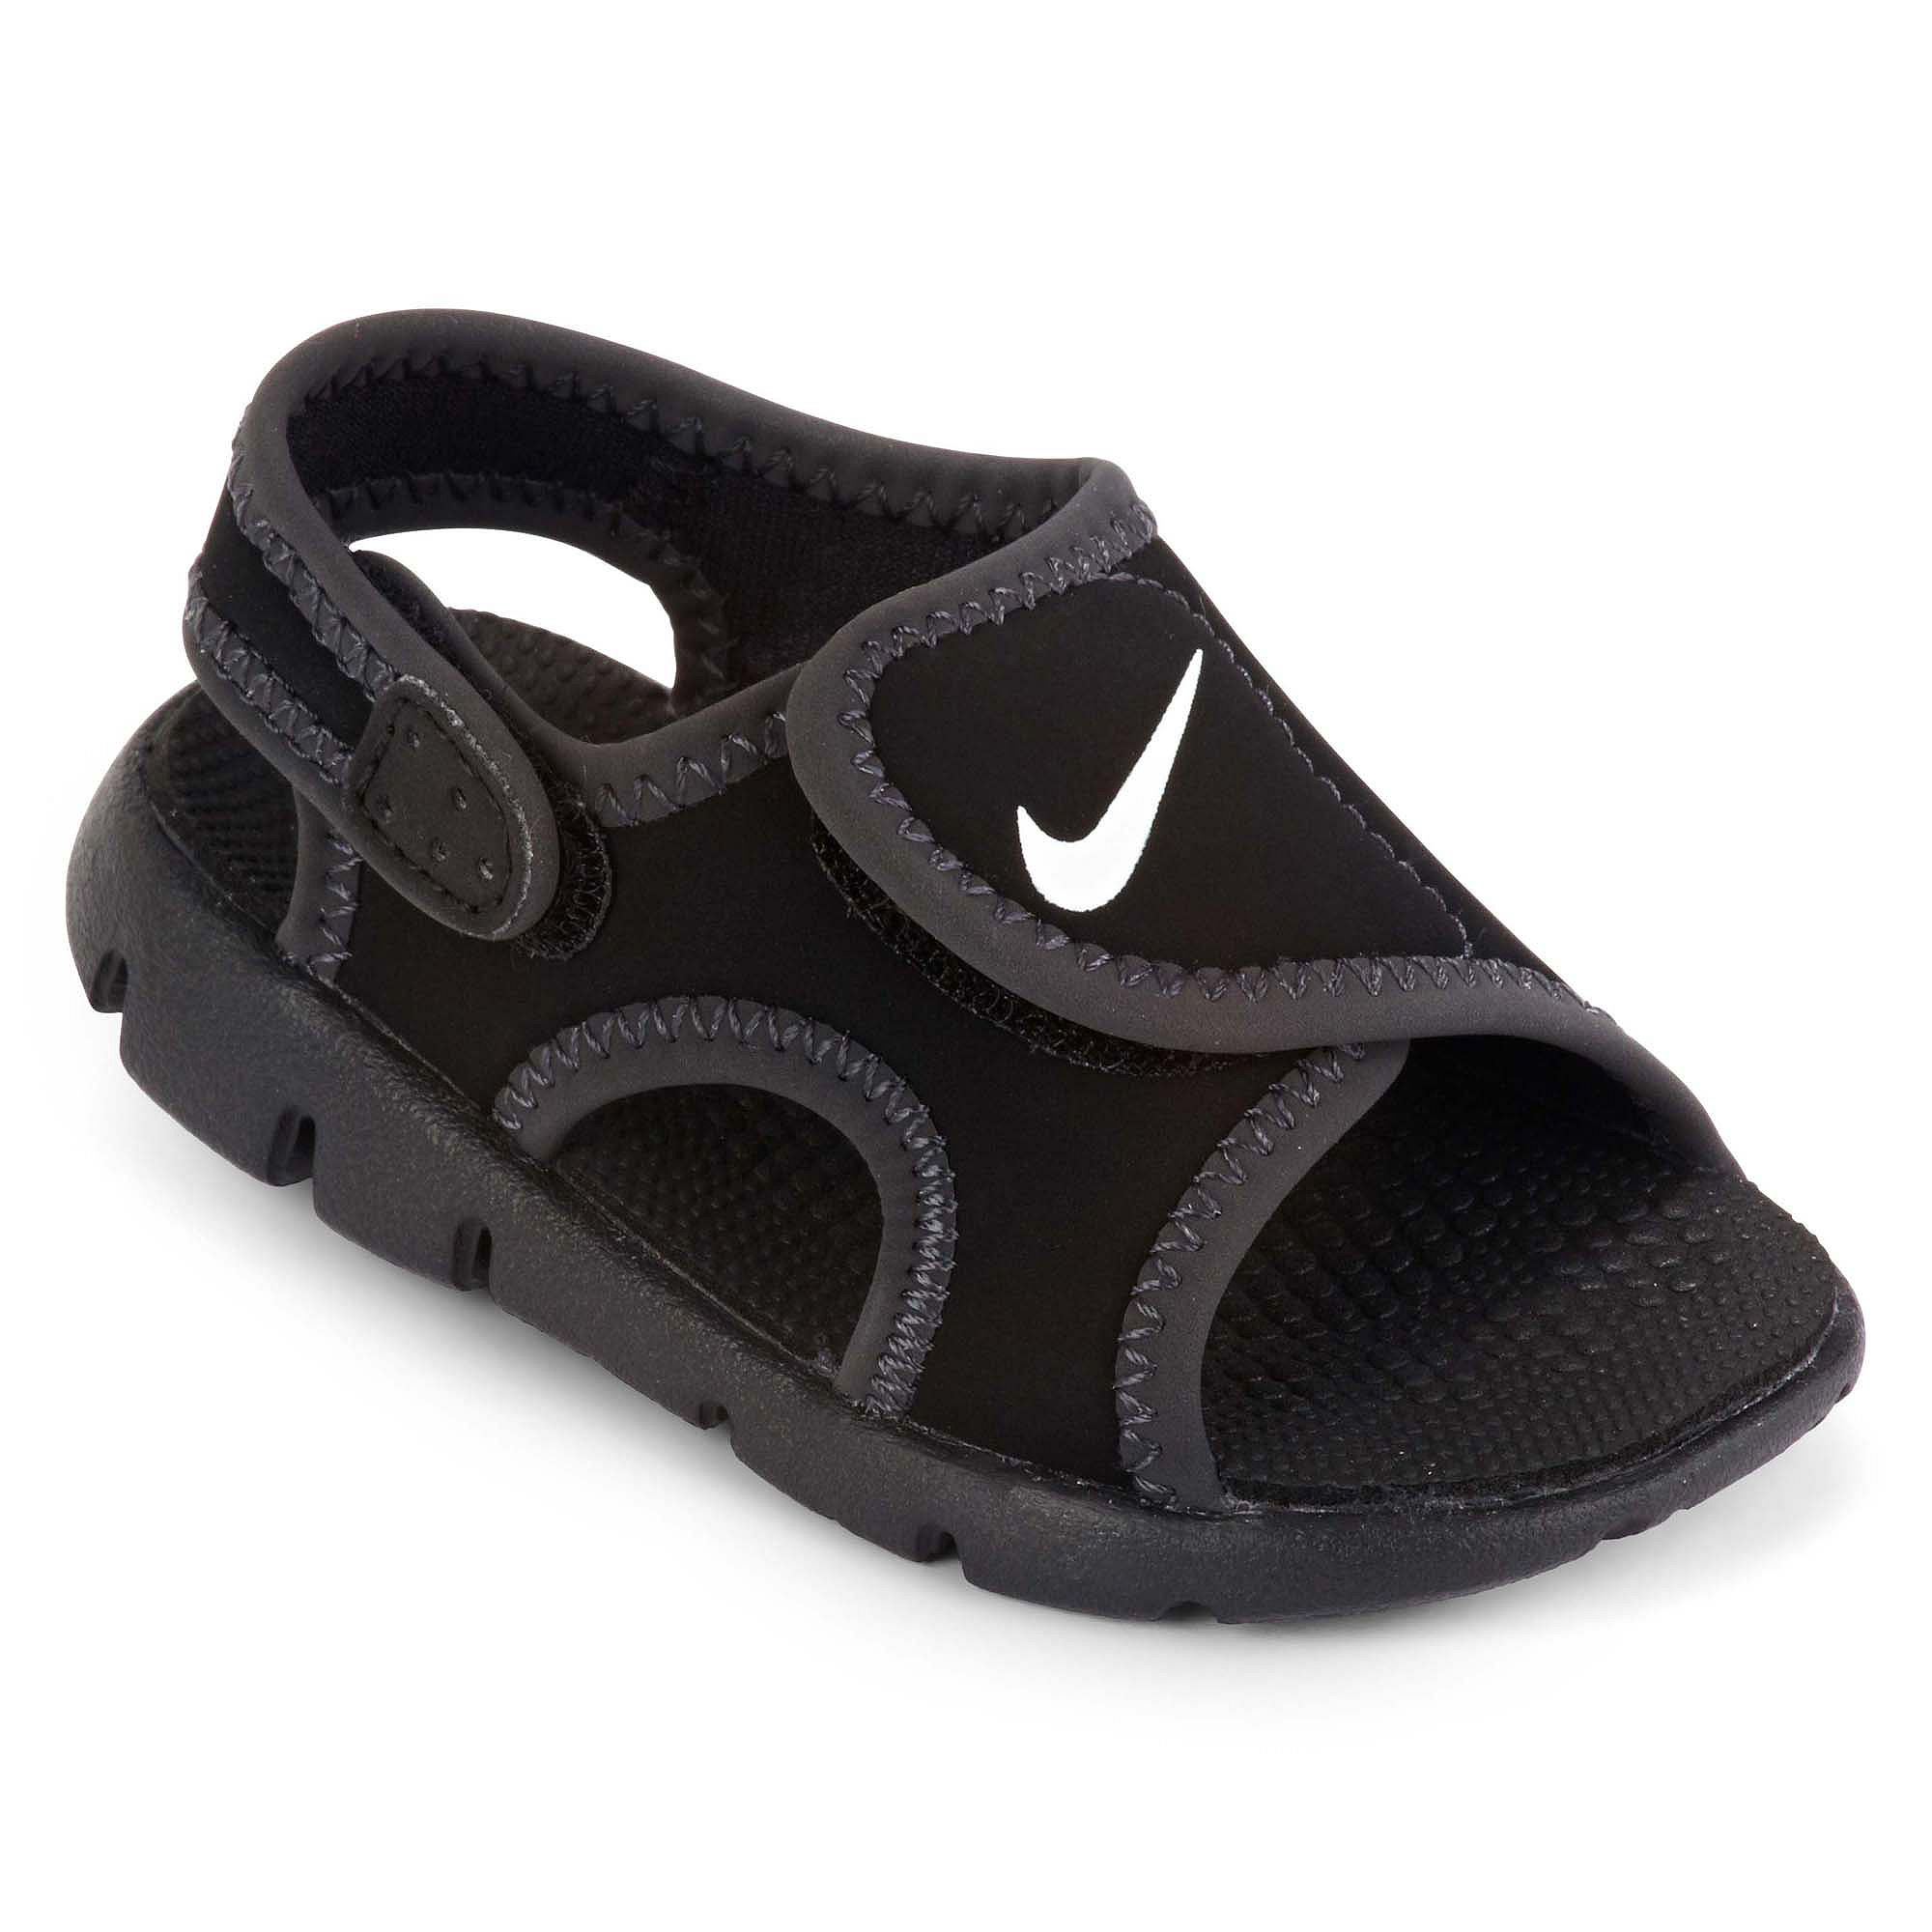 Best Toddler Beach Shoes